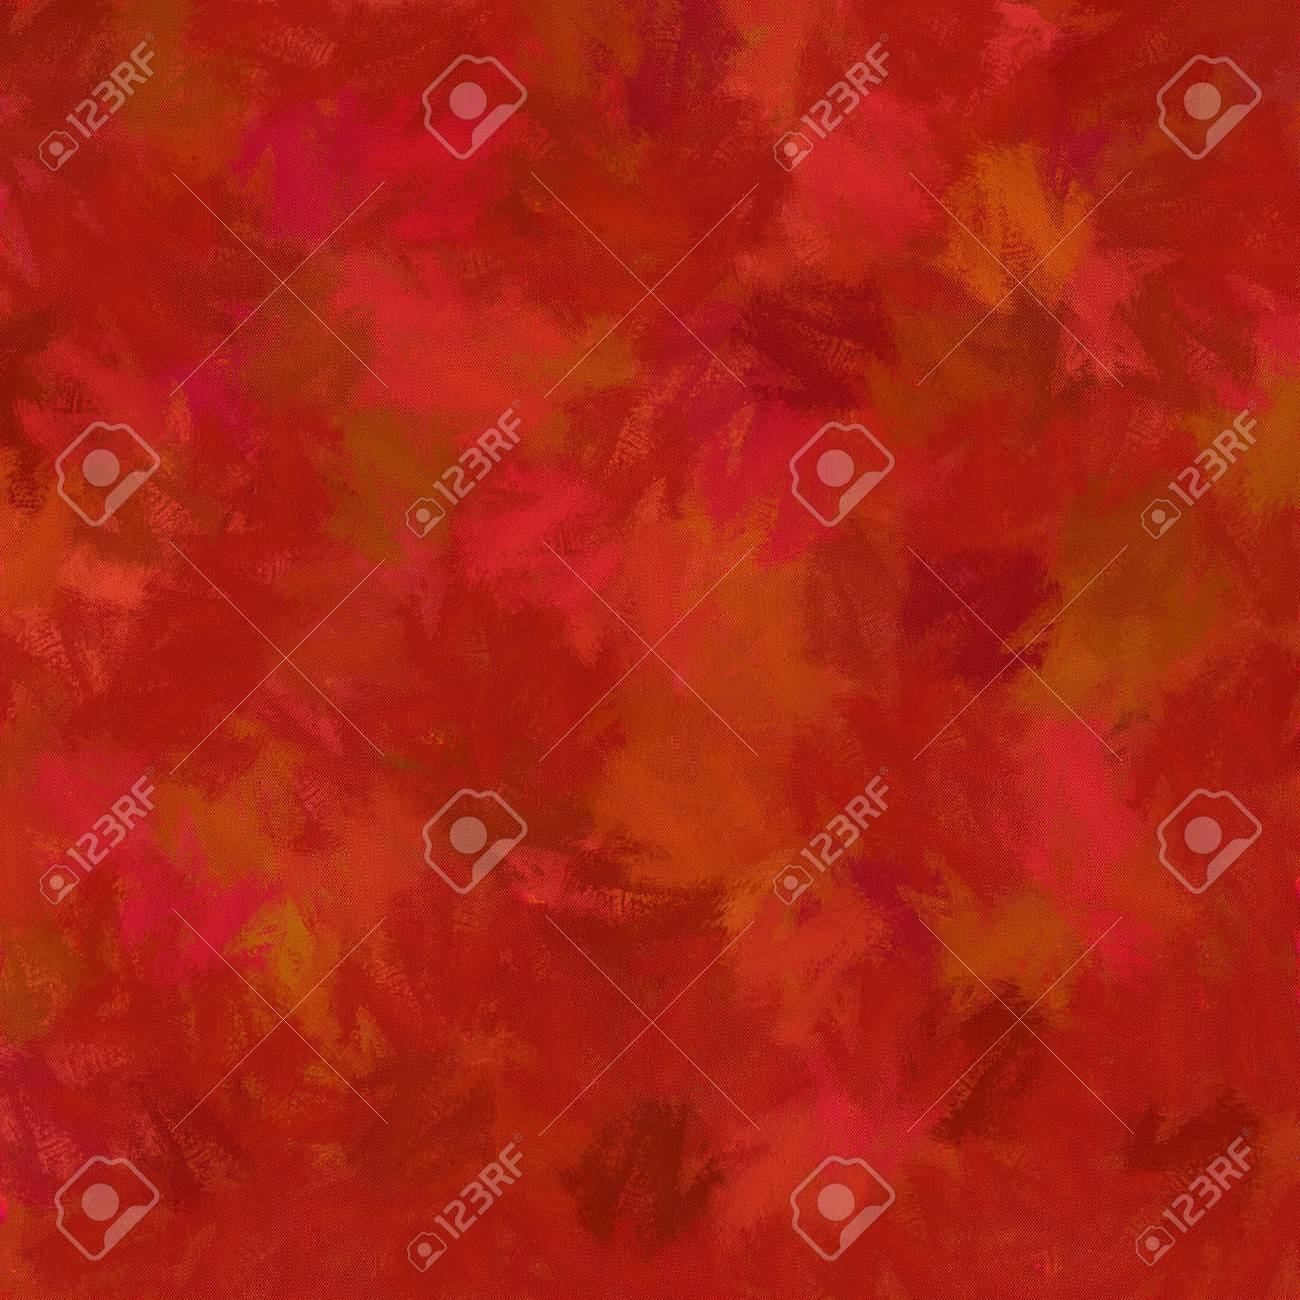 Computer designed impressionist style vintage texture or background Stock Photo - 21312855